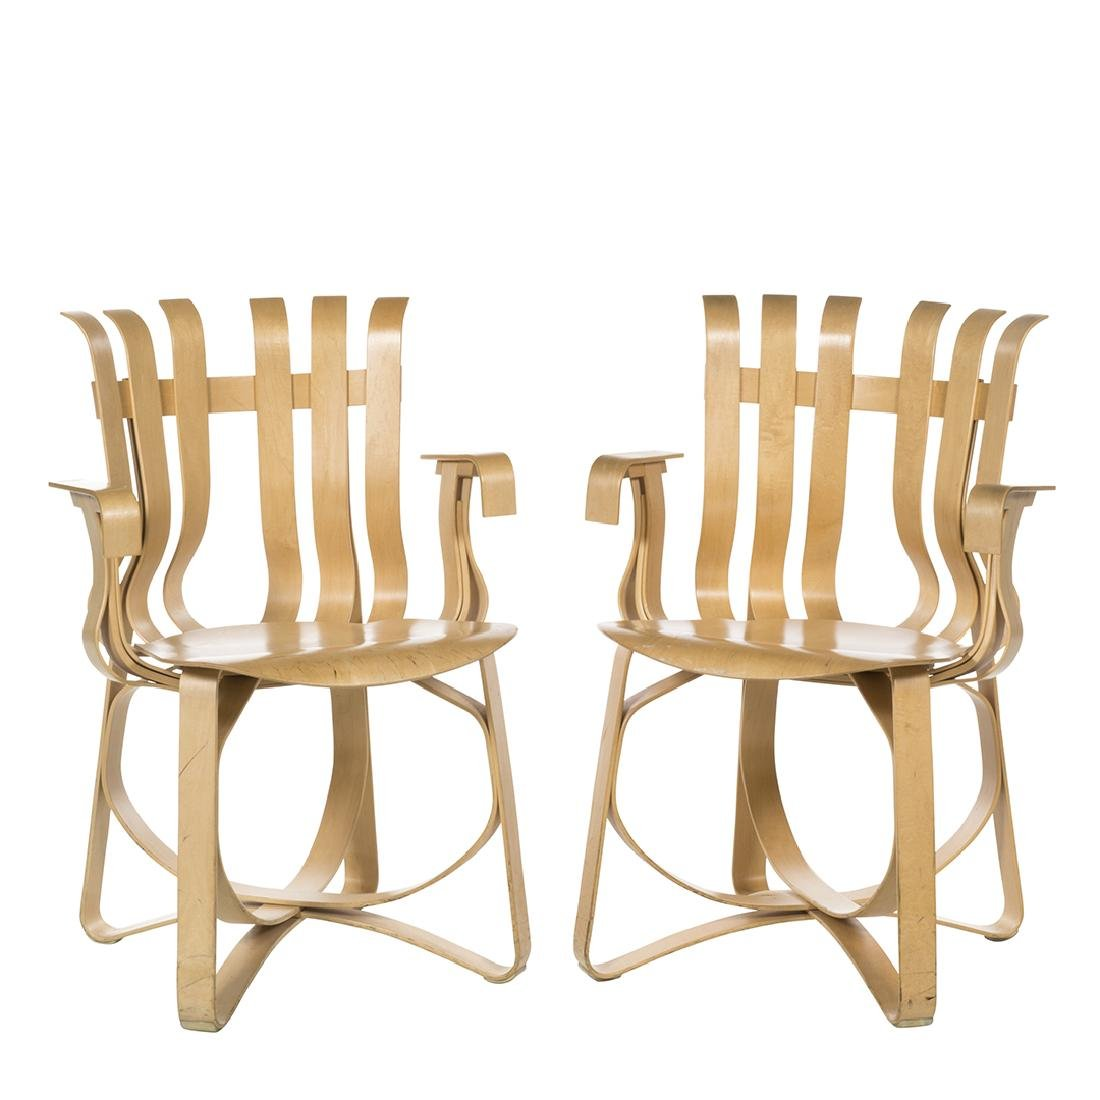 Frank Gehry Hat Trick Chairs (2)